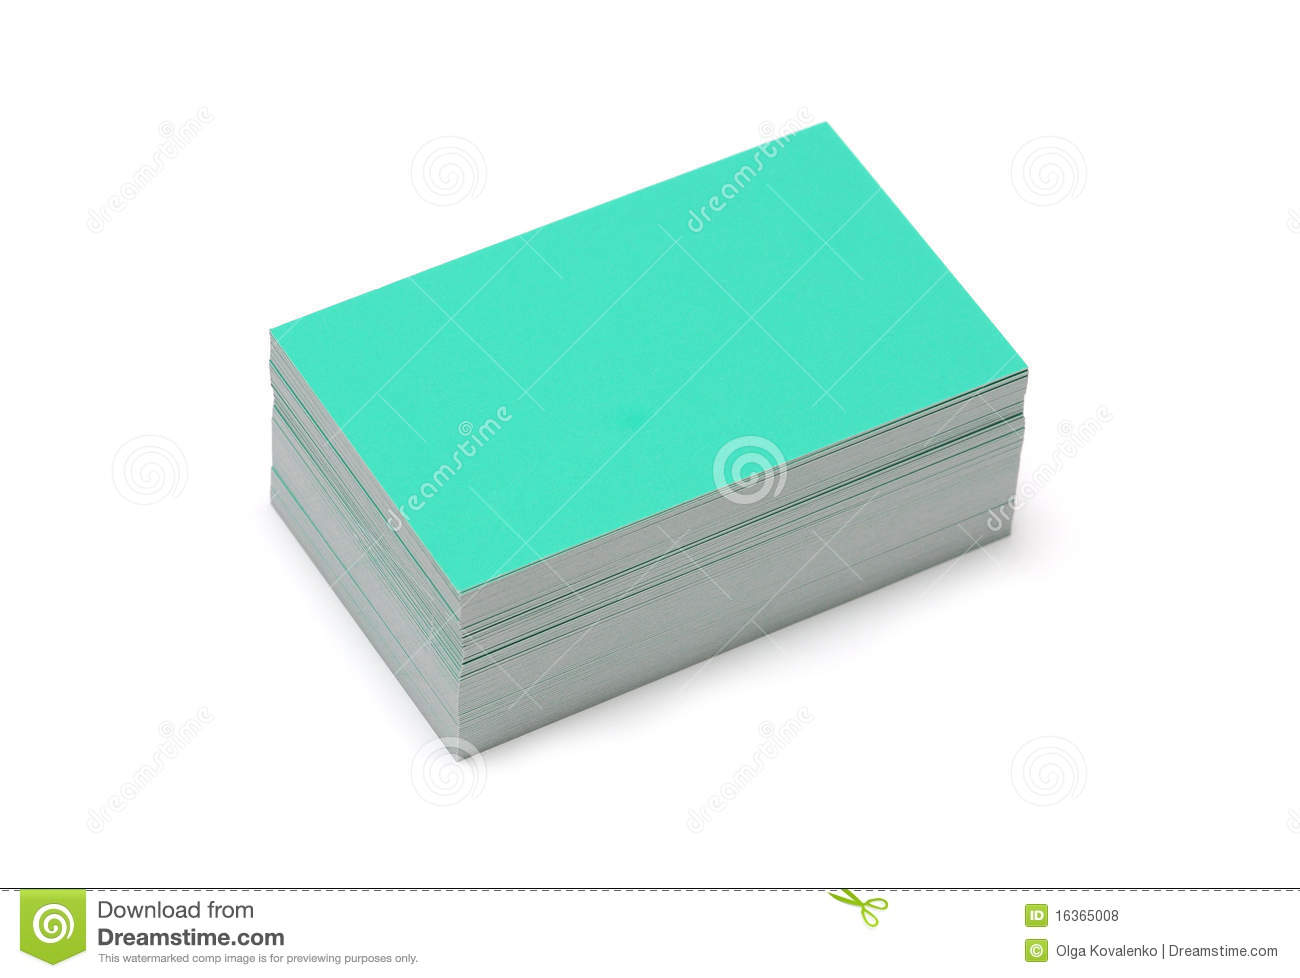 Pile of business cards stock photo. Image of industrial - 16365008